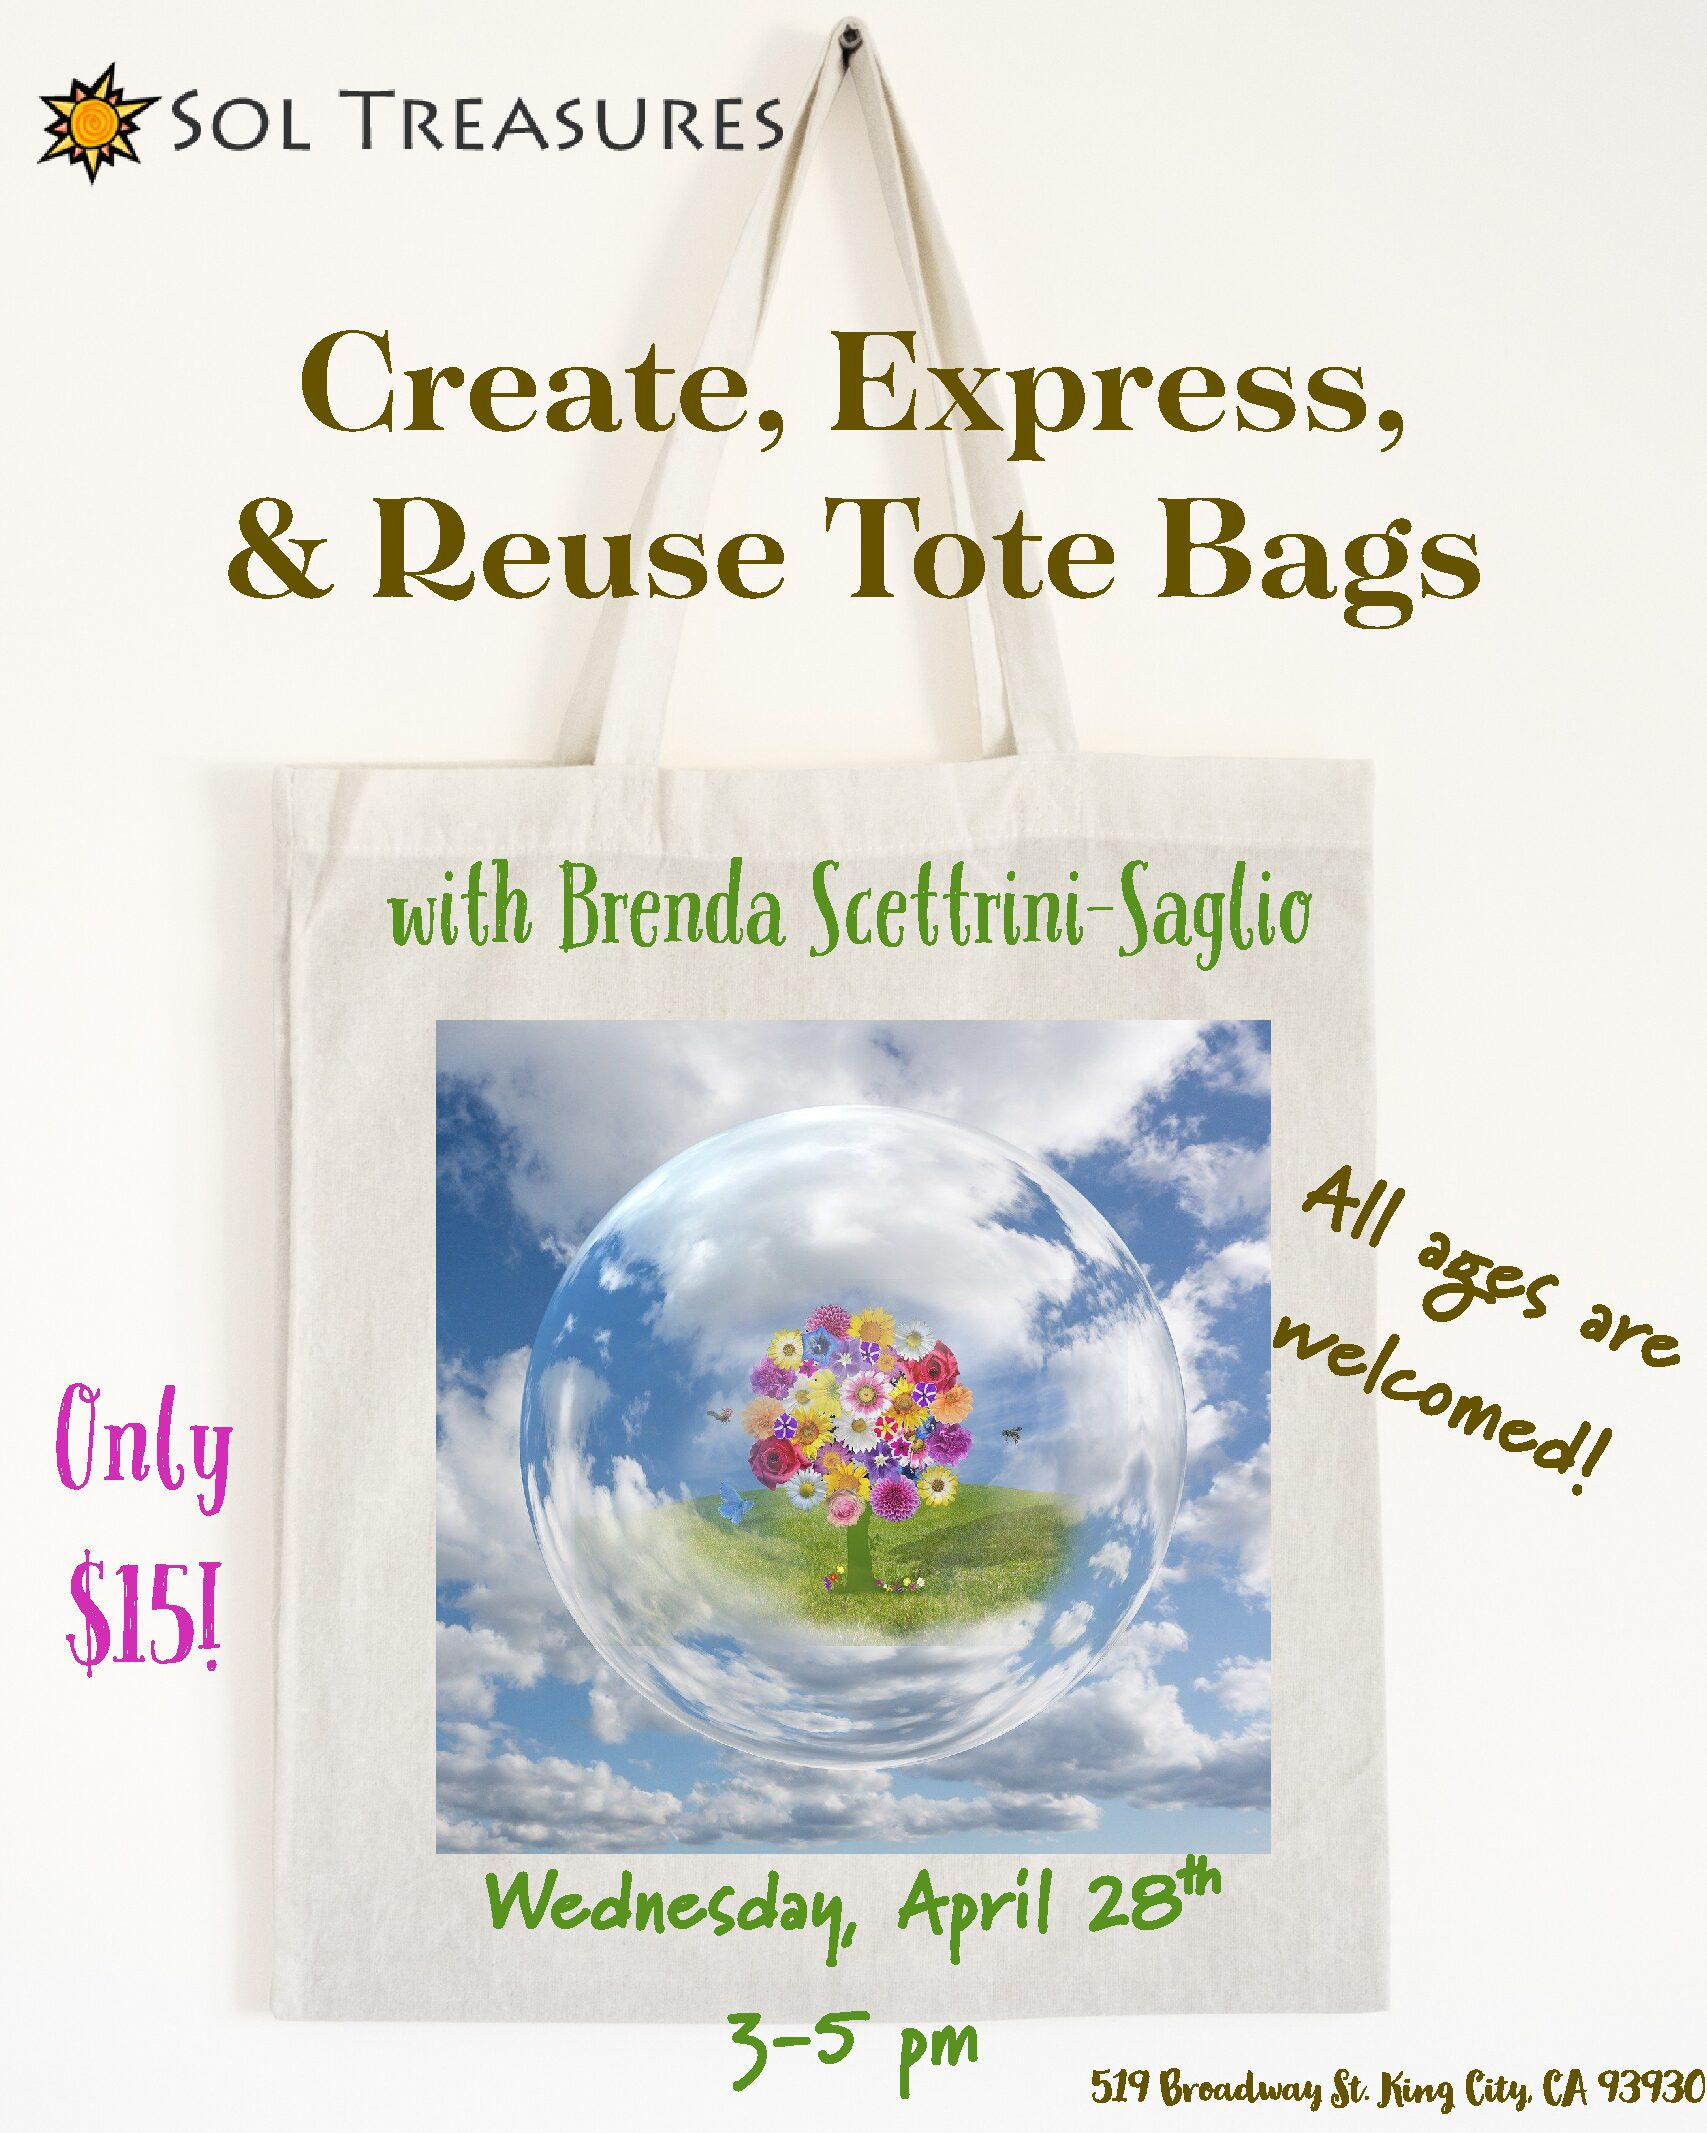 Create, Express, & Reuse Tote Bags